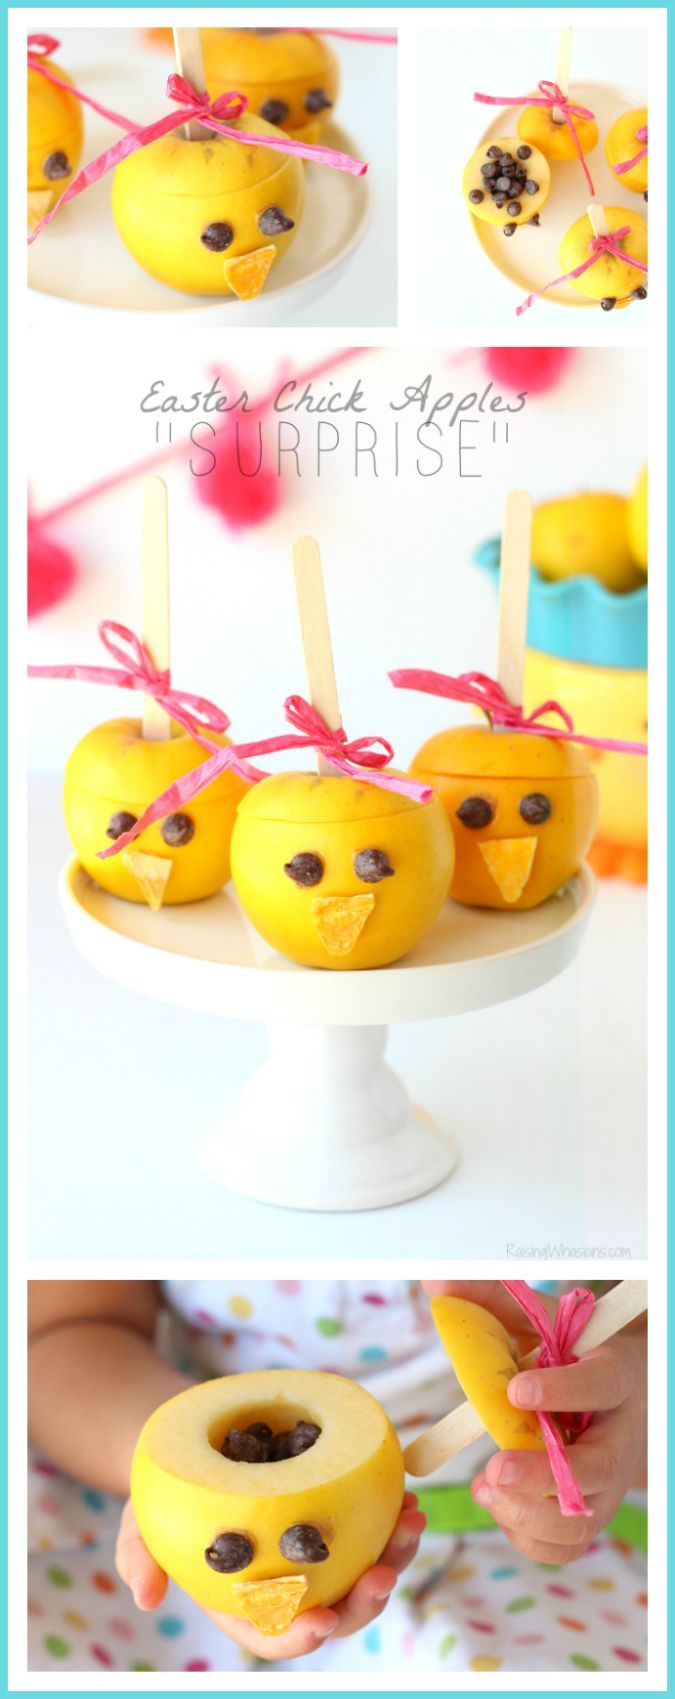 "Easter Chick Apples ""Surprise"" 